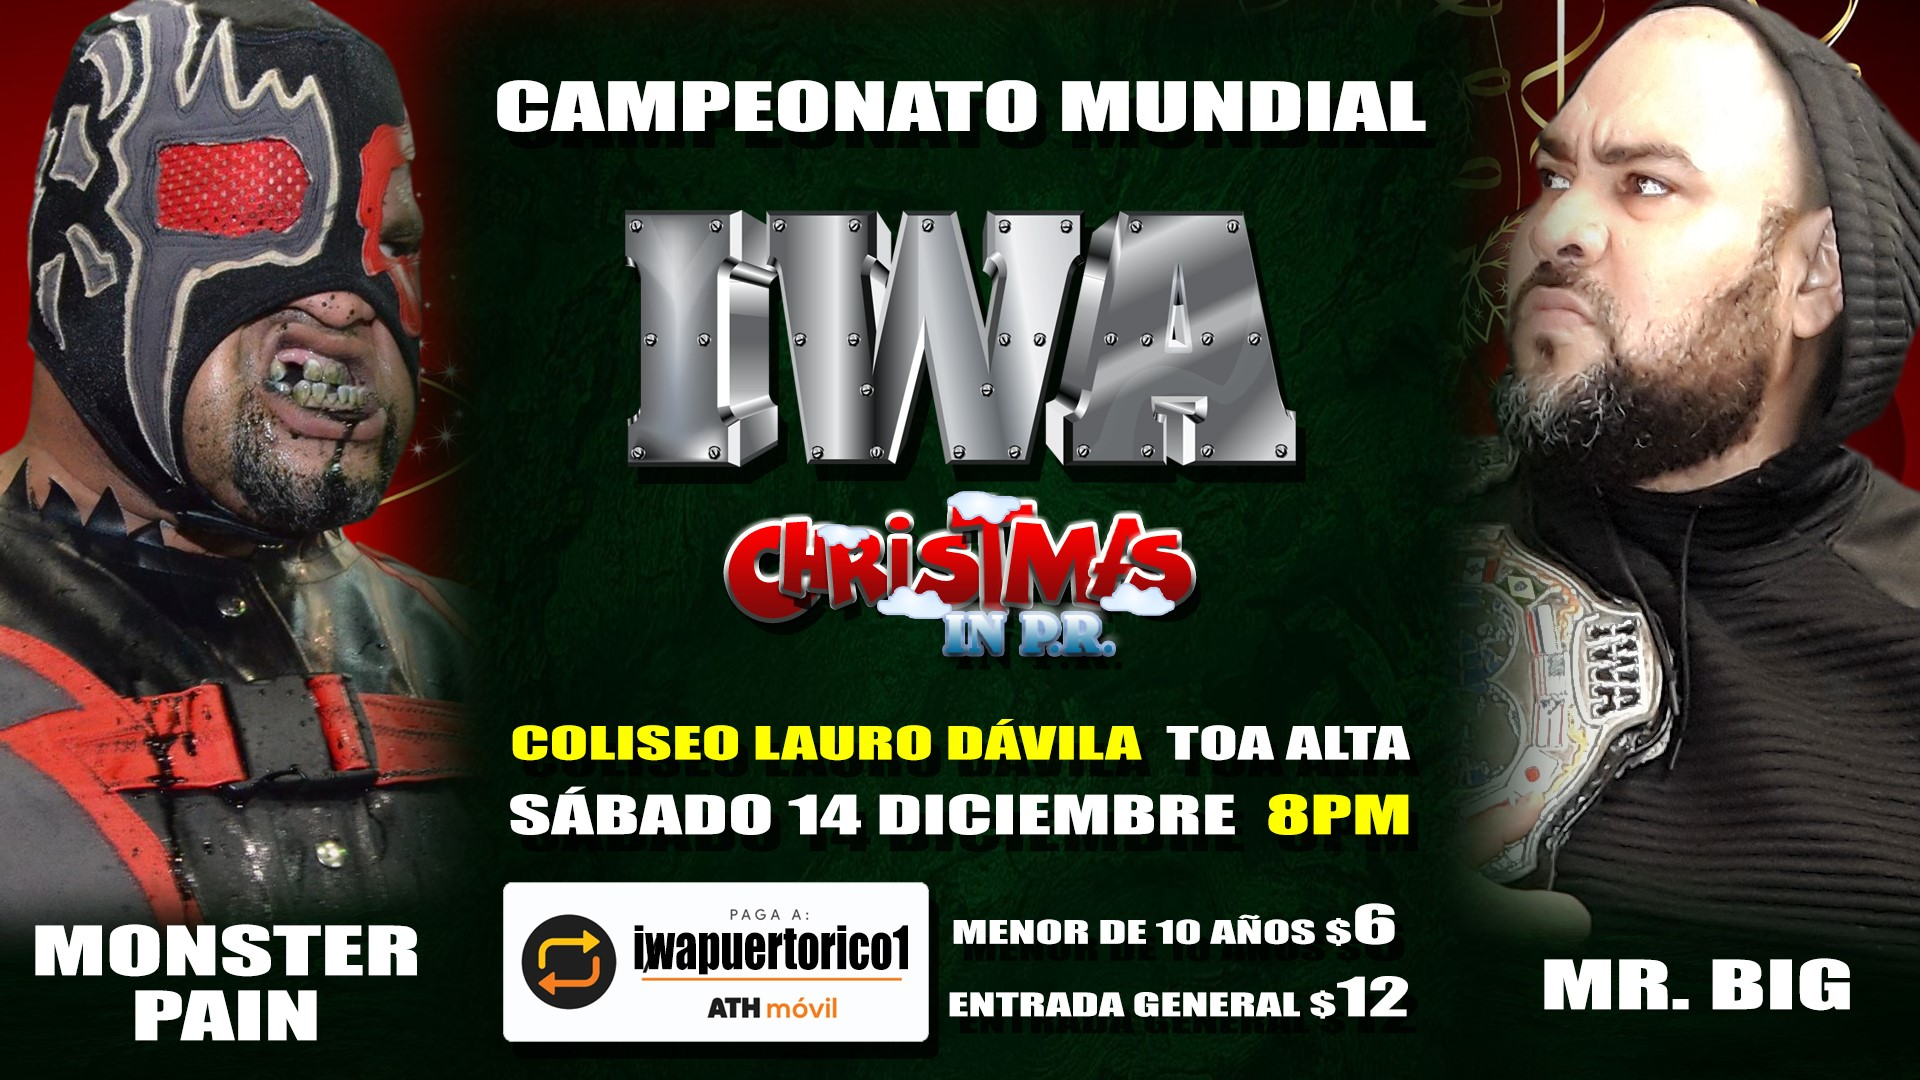 Cartel final para Christmas in PR - Savio Vega frente a Thunder 9